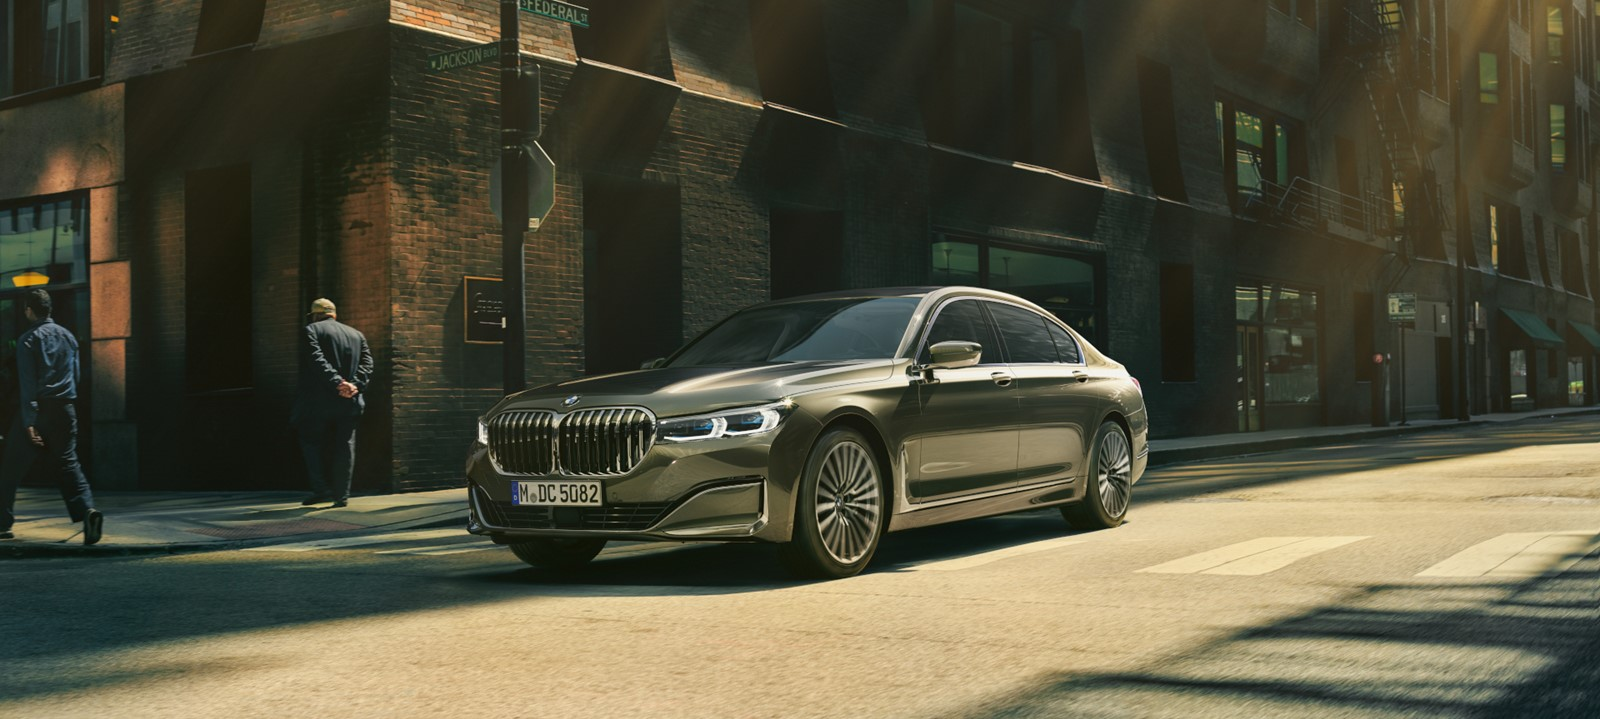 The new BMW 7 Series Saloon | Sytner Sunningdale BMW